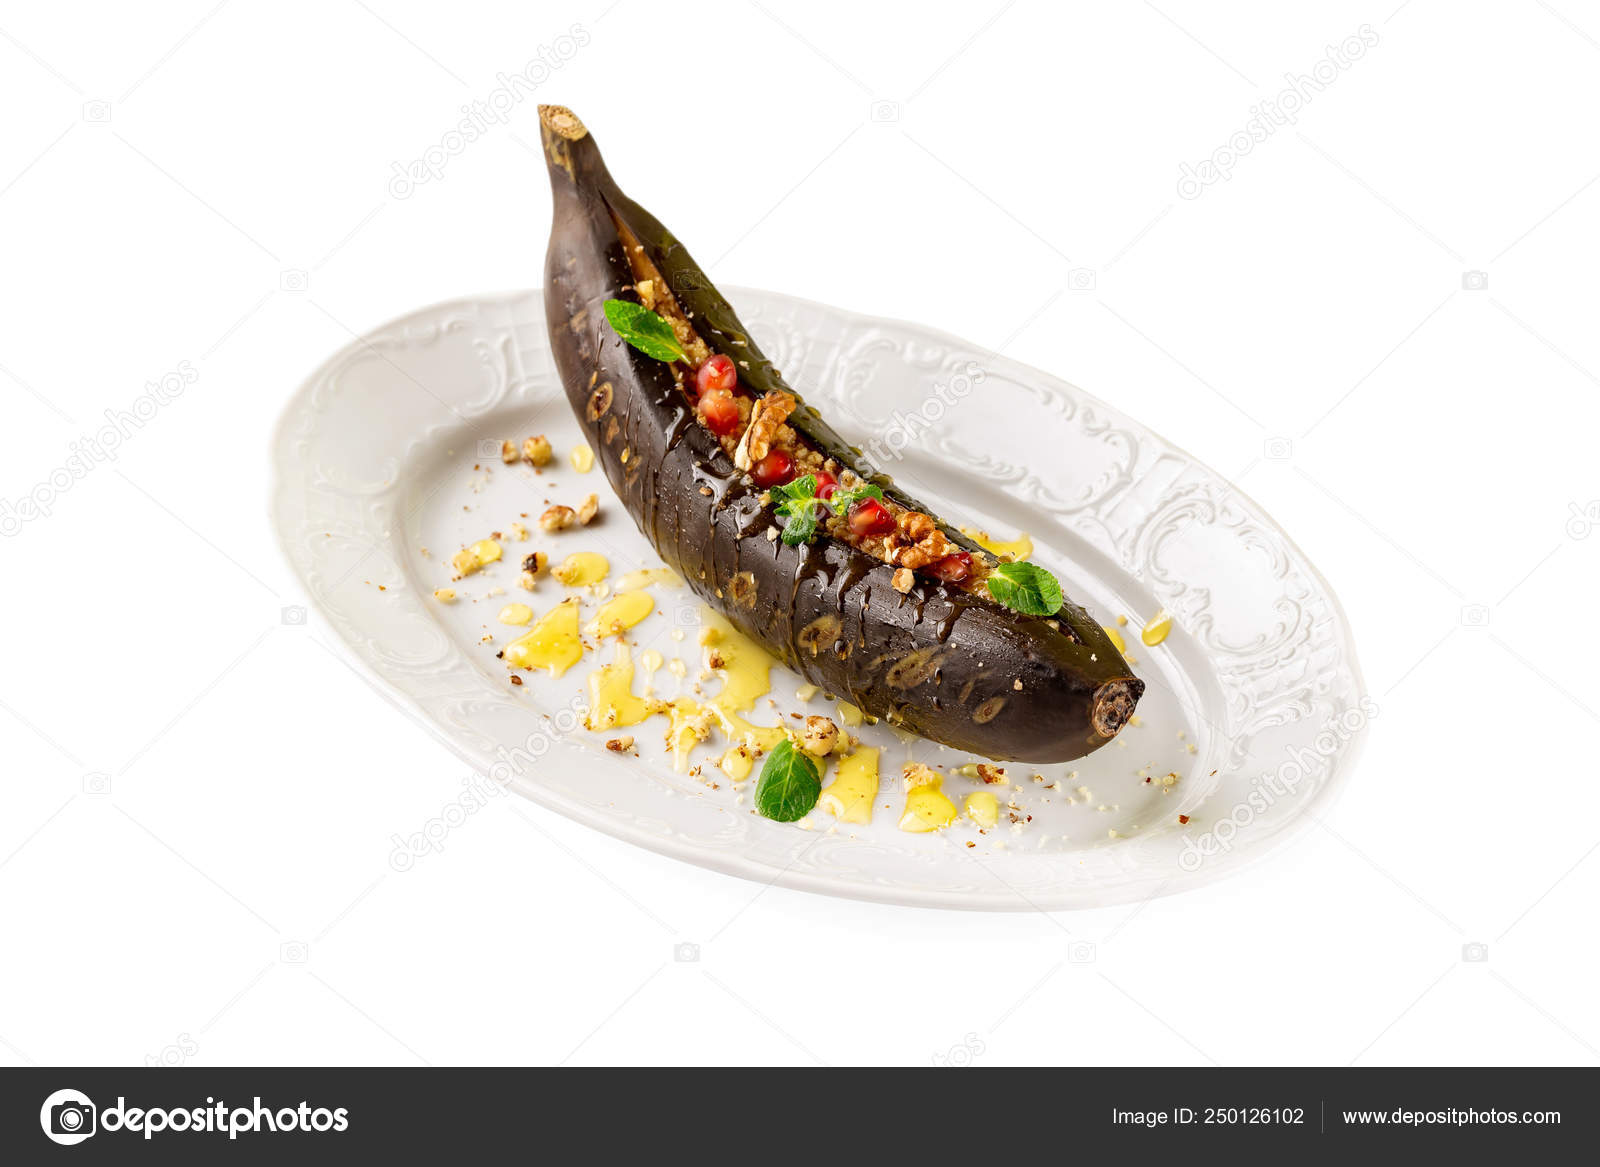 Grilled Banana Stuffed With Nuts Pomegranate And Honey On A